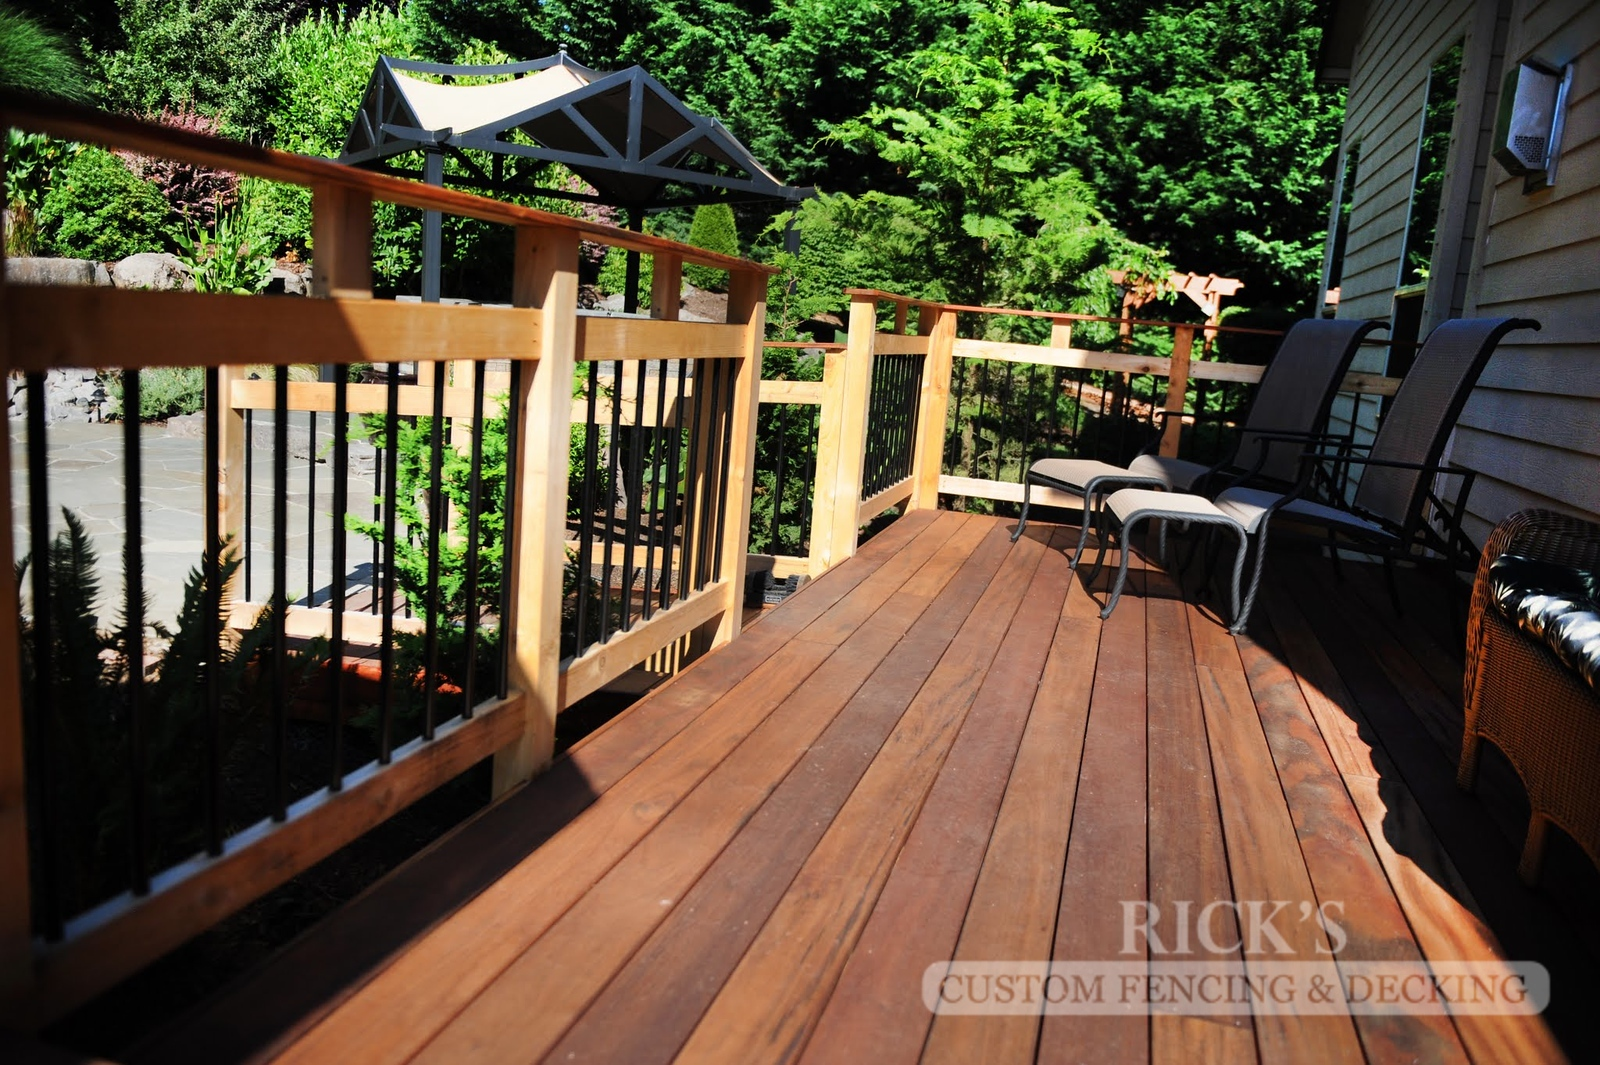 1119 - TigerWood Hardwood Decking